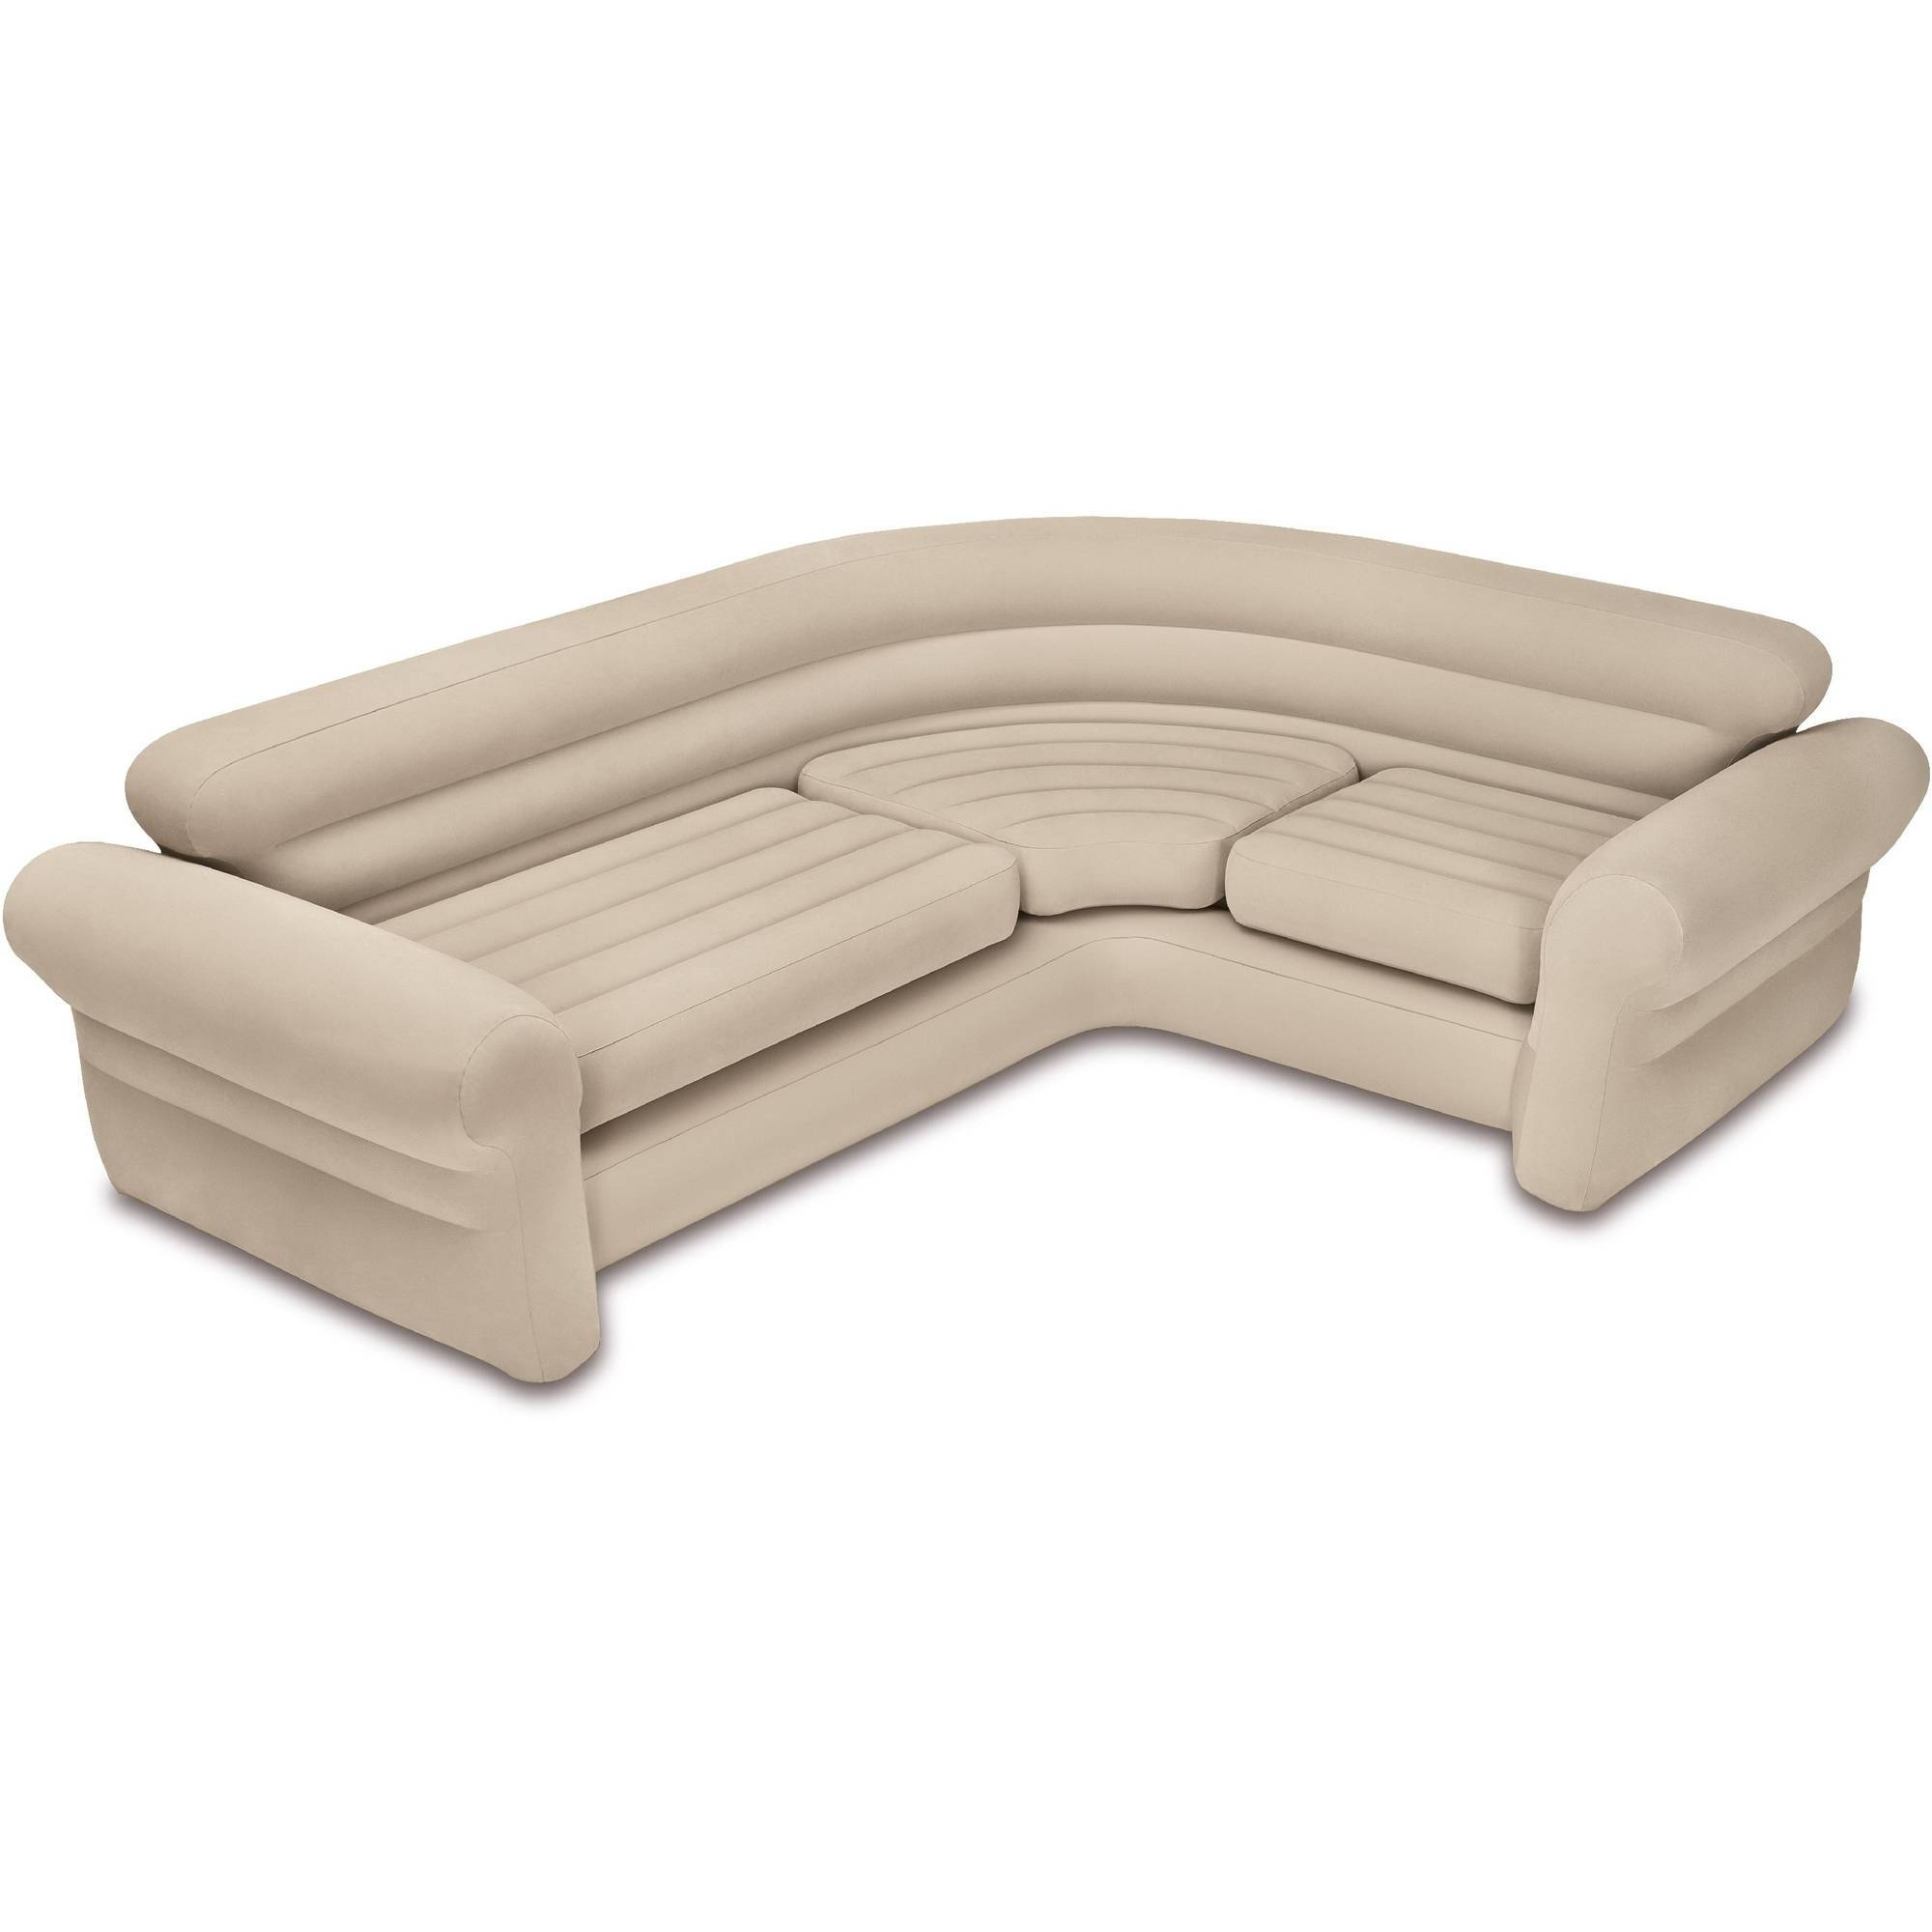 Air Couches for Camping Sofas (Image 4 of 15)